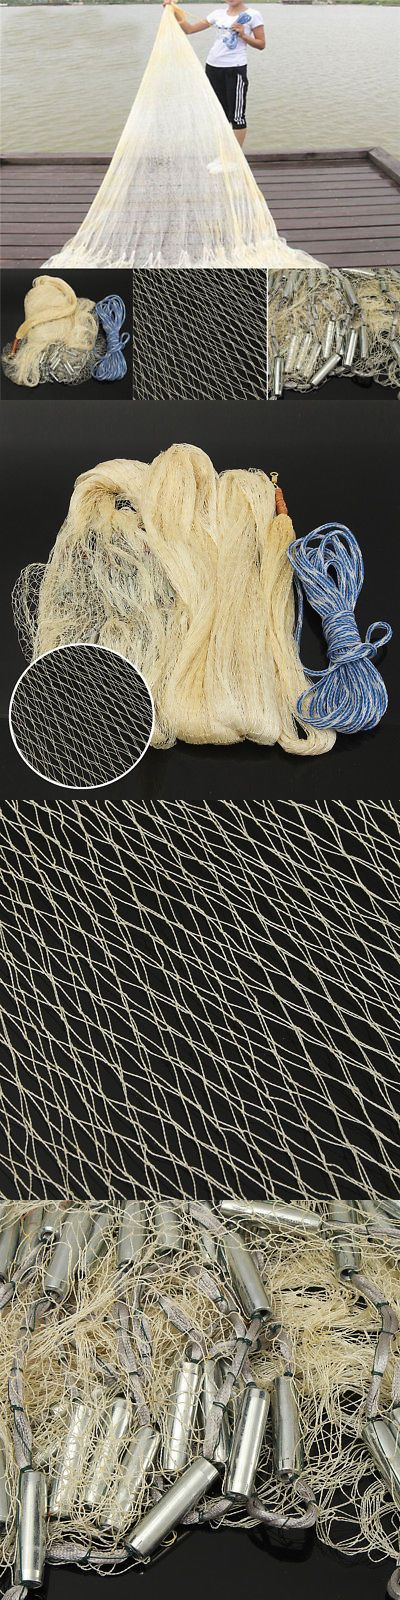 Nets 81458: Big Fishing Net 3X4m Nylon Monofilament Fish Trap Gill Throw For Hand Casting -> BUY IT NOW ONLY: $41.99 on eBay!